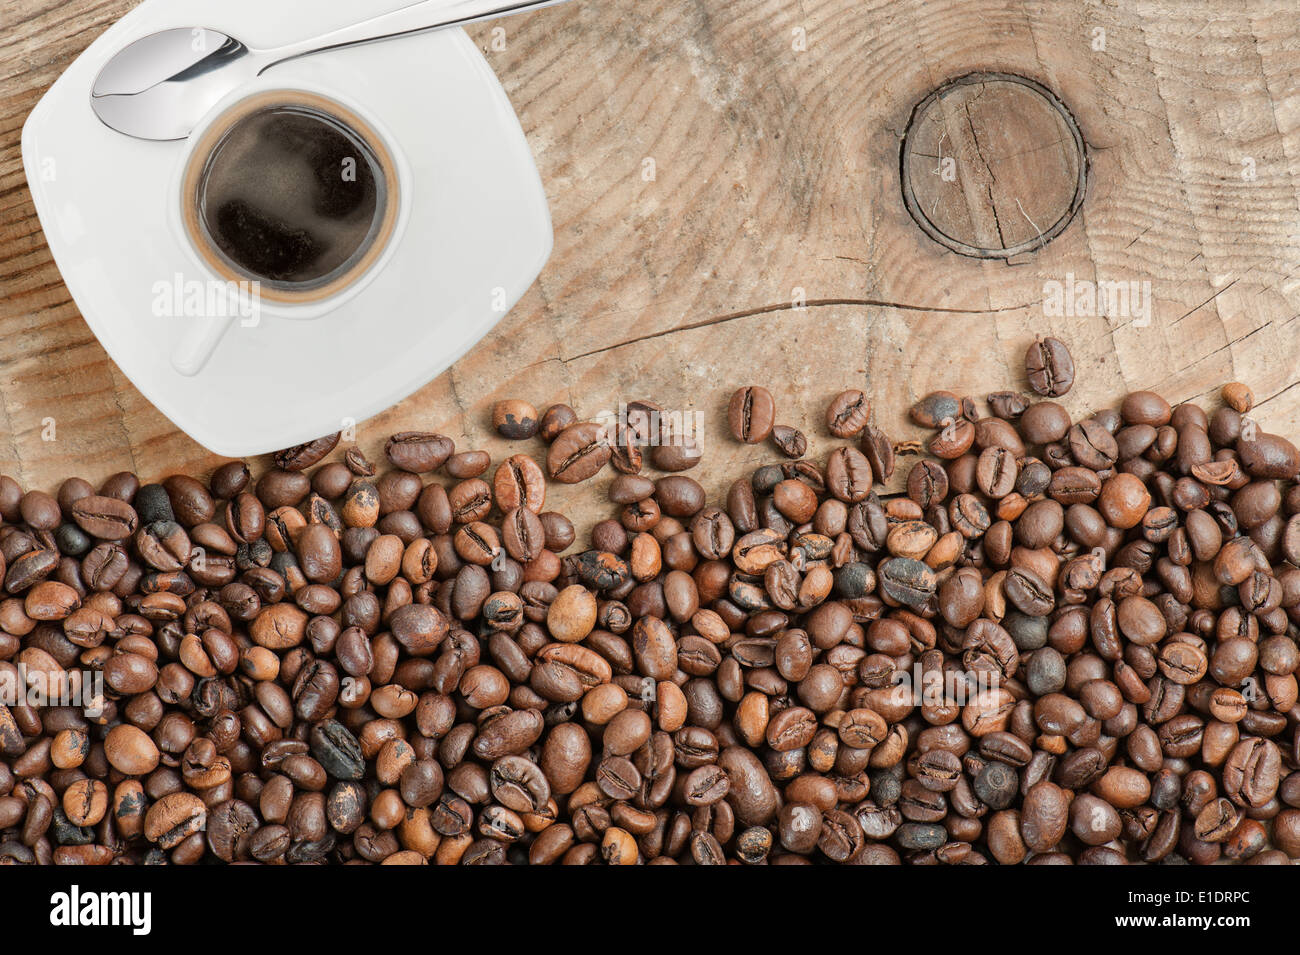 coffee beans on wooden table with cup of coffee - Stock Image